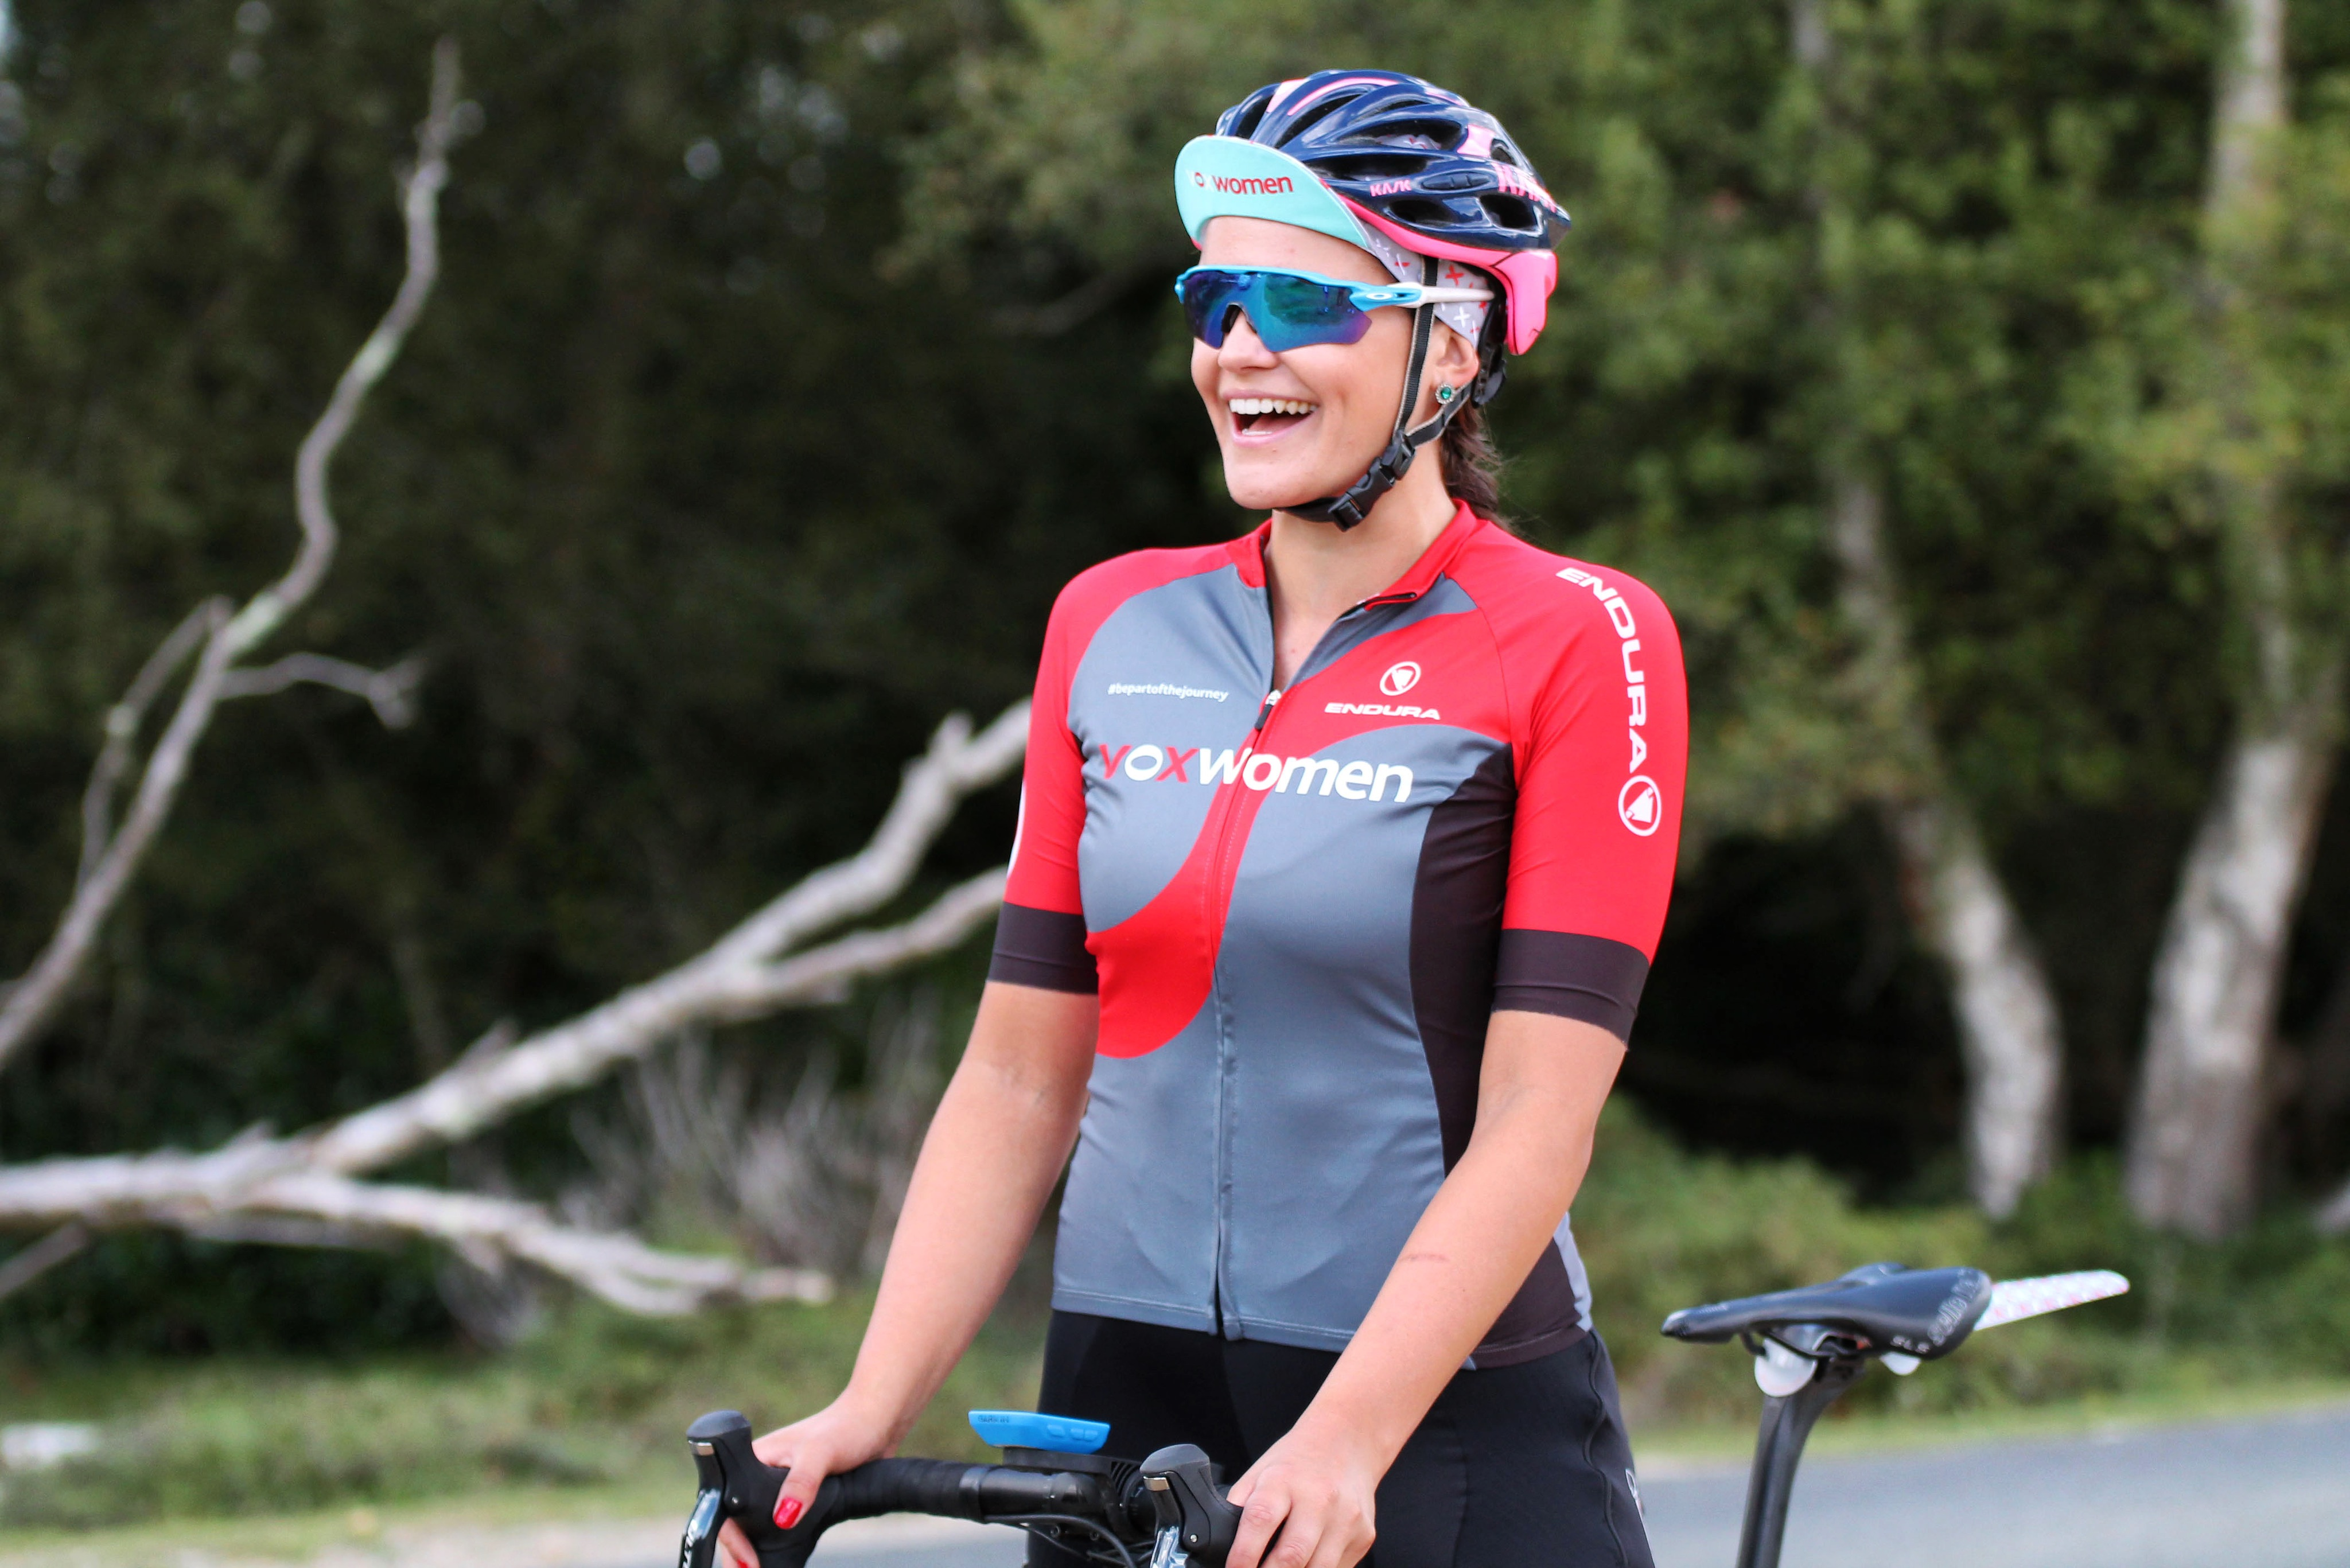 Laura Winter – Finding happiness watts in Zwift Academy